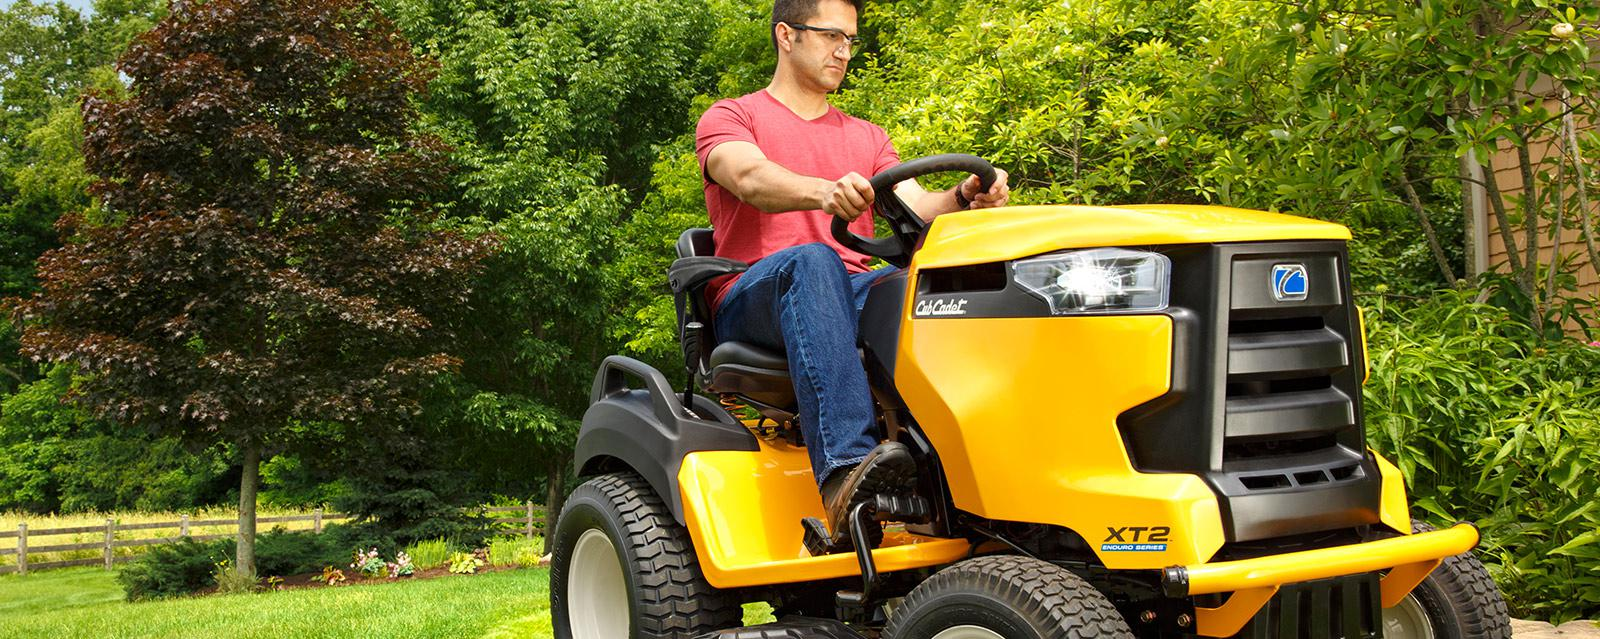 Cub Cadet - Riding Mower